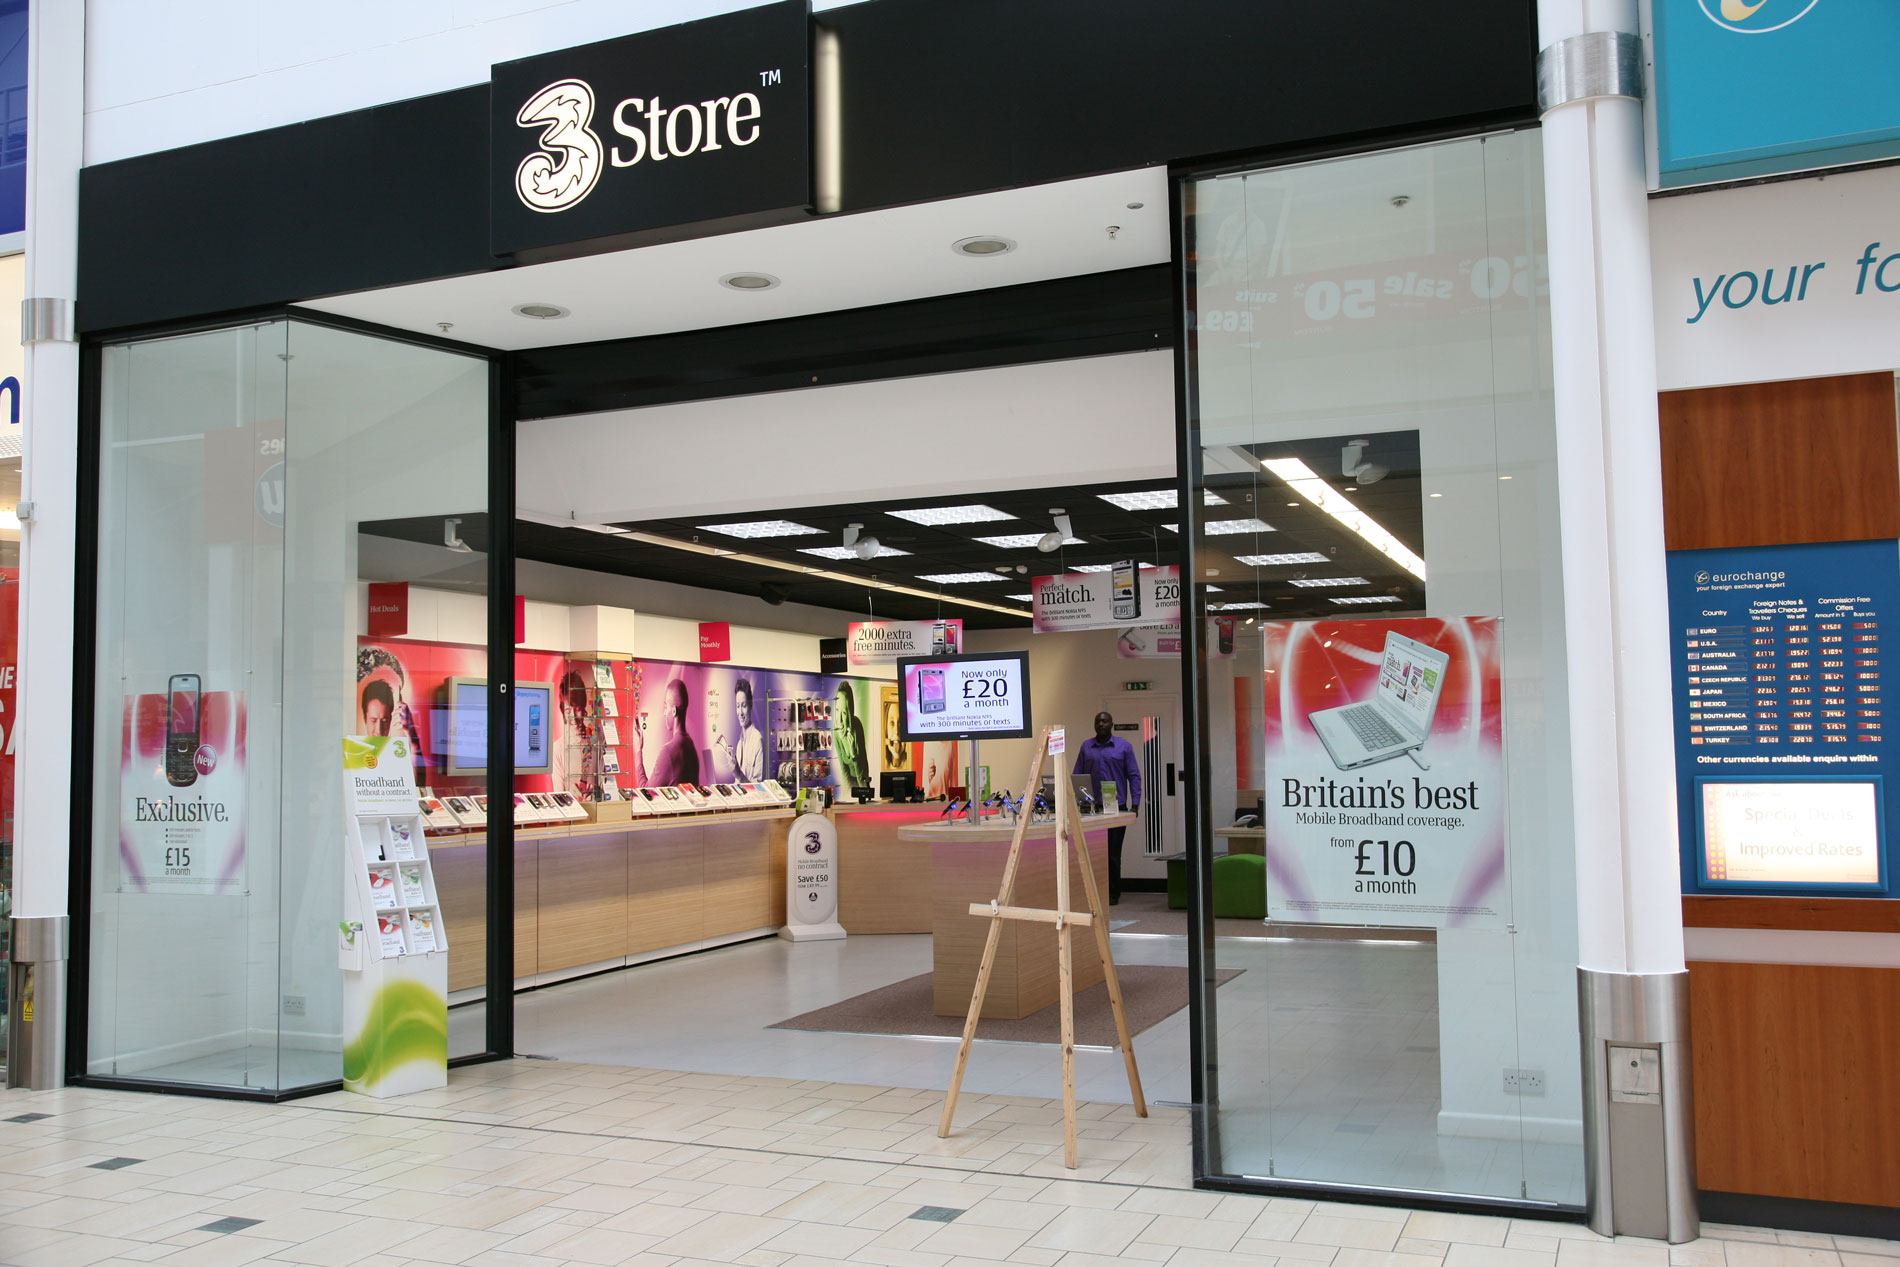 3Store1